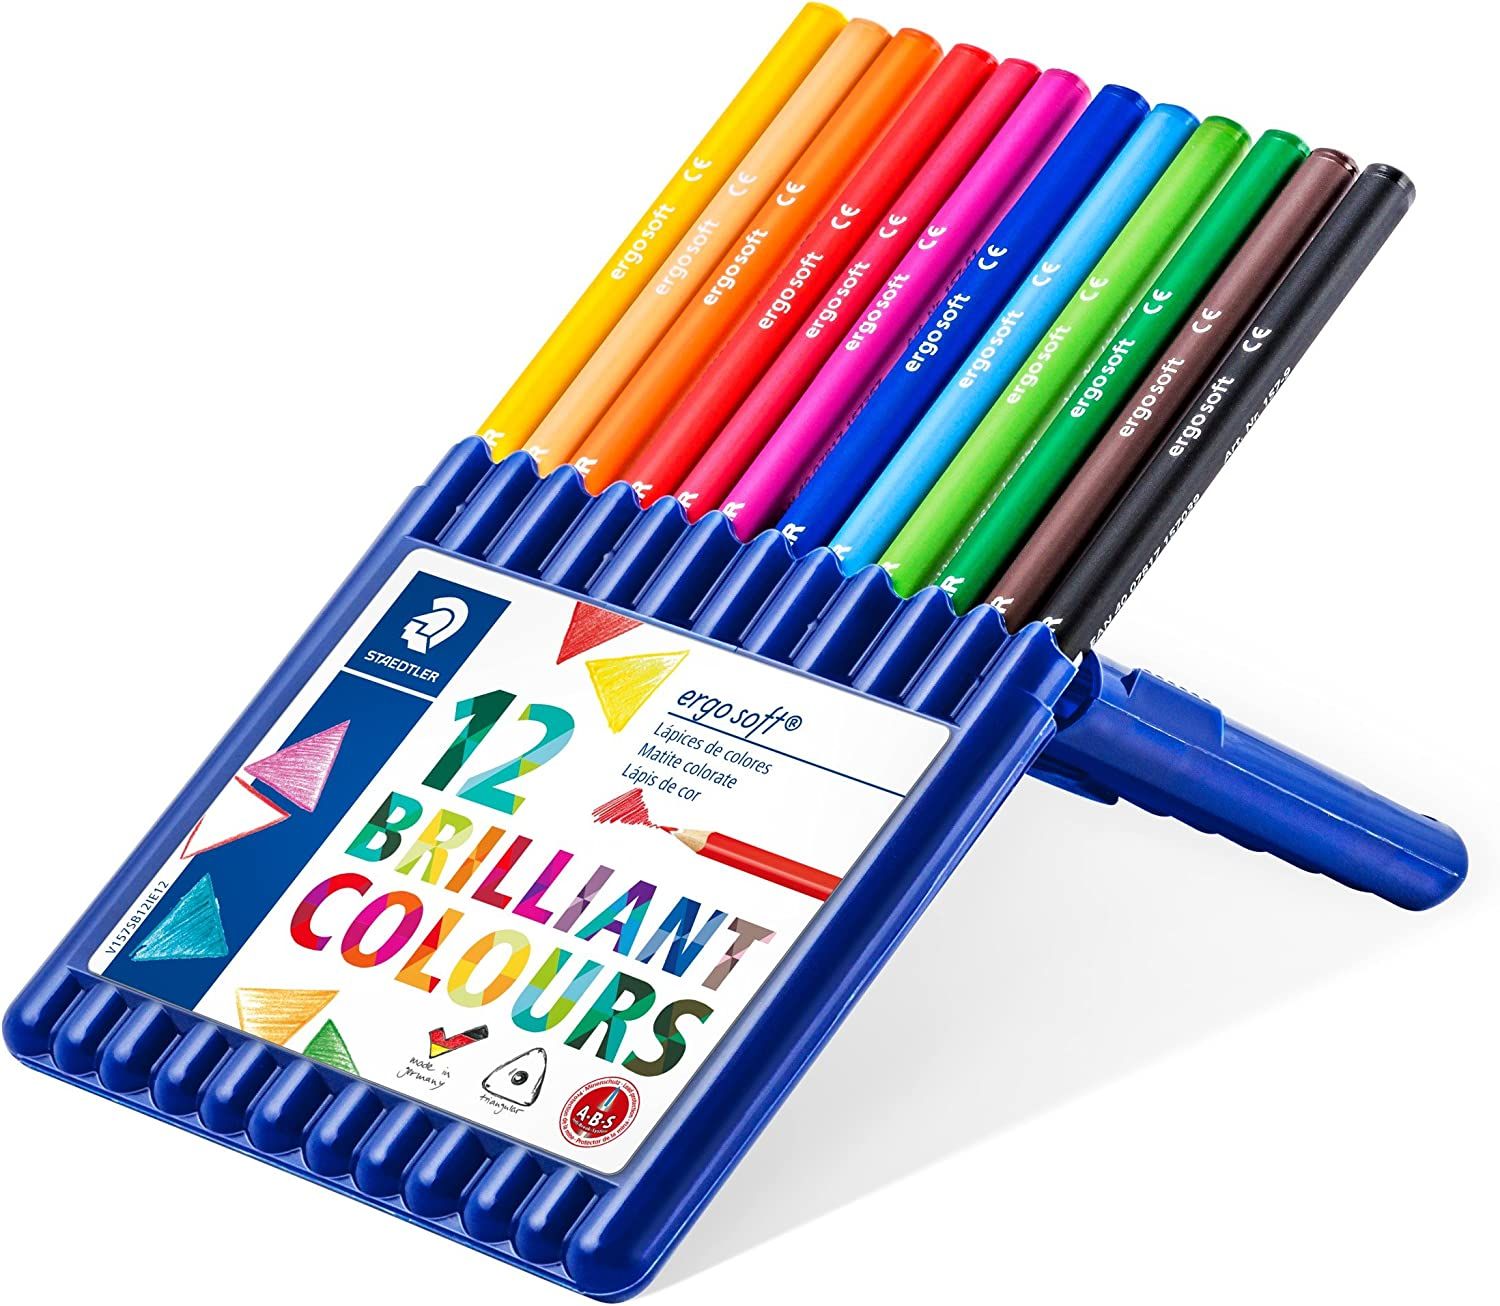 New. Set of 12 Colored Pencils